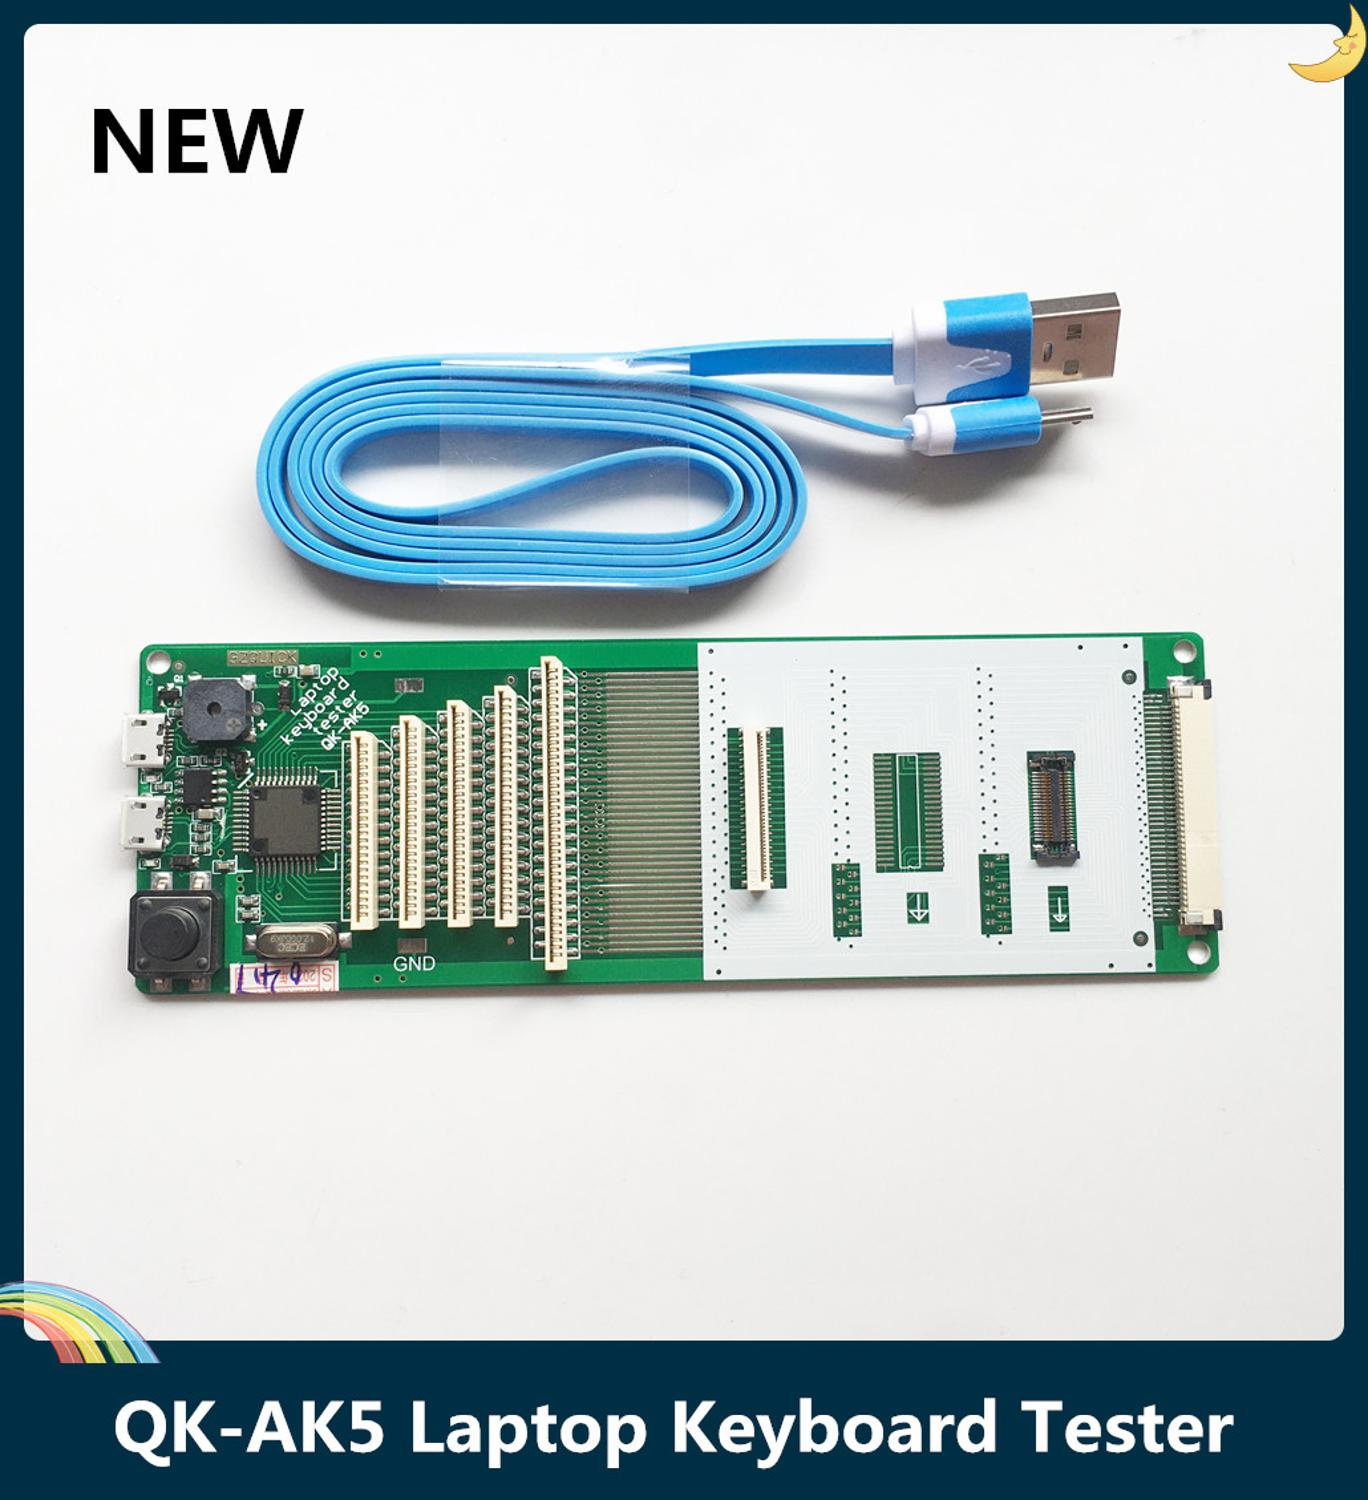 LSC New QK-AK5 Laptop Keyboard Tester Testing Device Machine Tool USB Interface With Cable Free Shipping